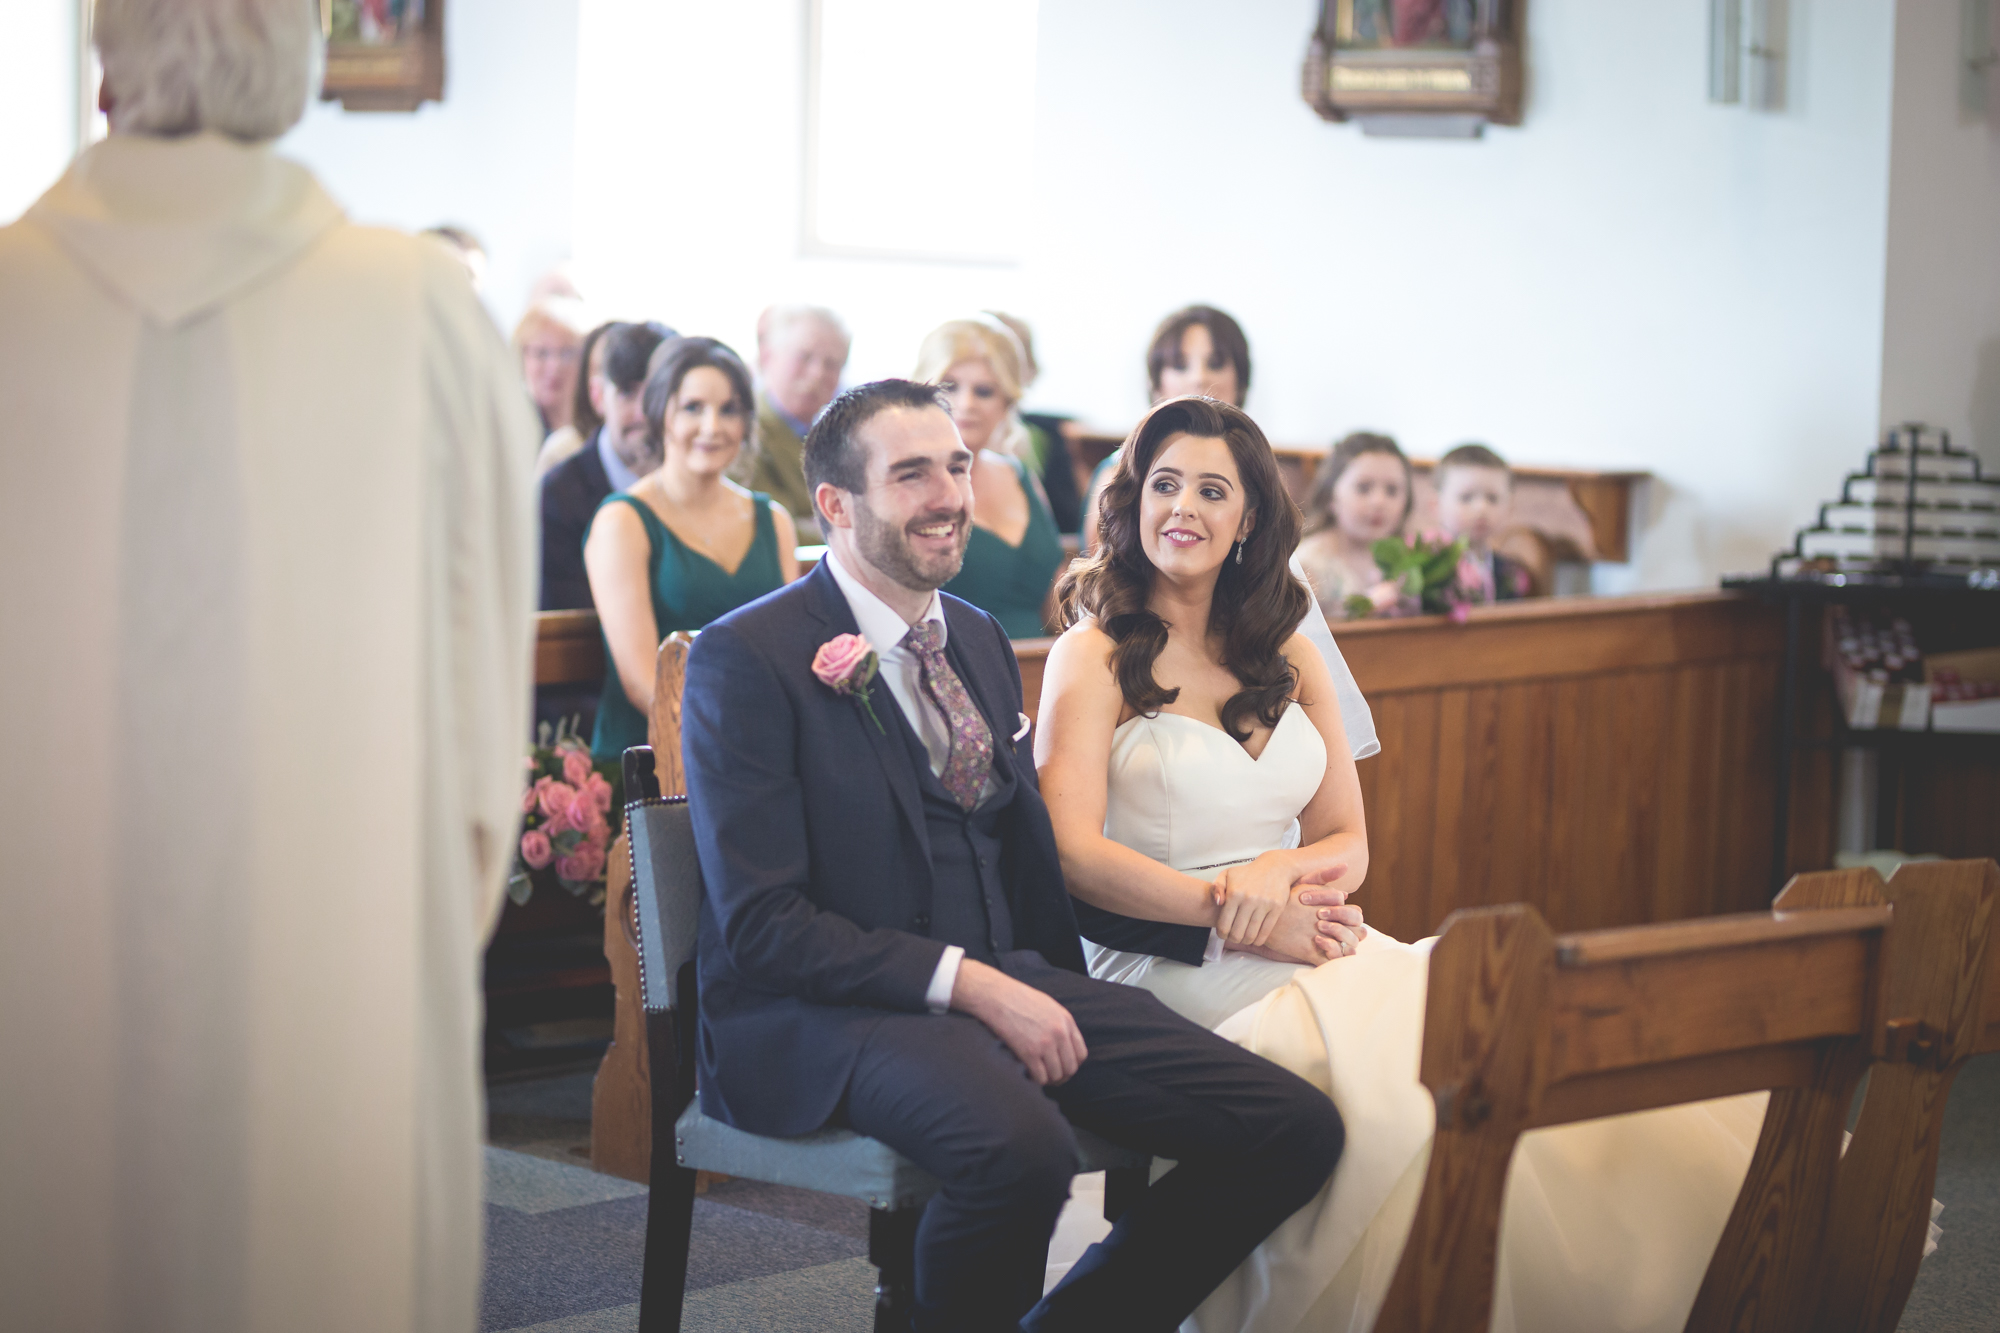 Francis&Oonagh-Ceremony-55.jpg